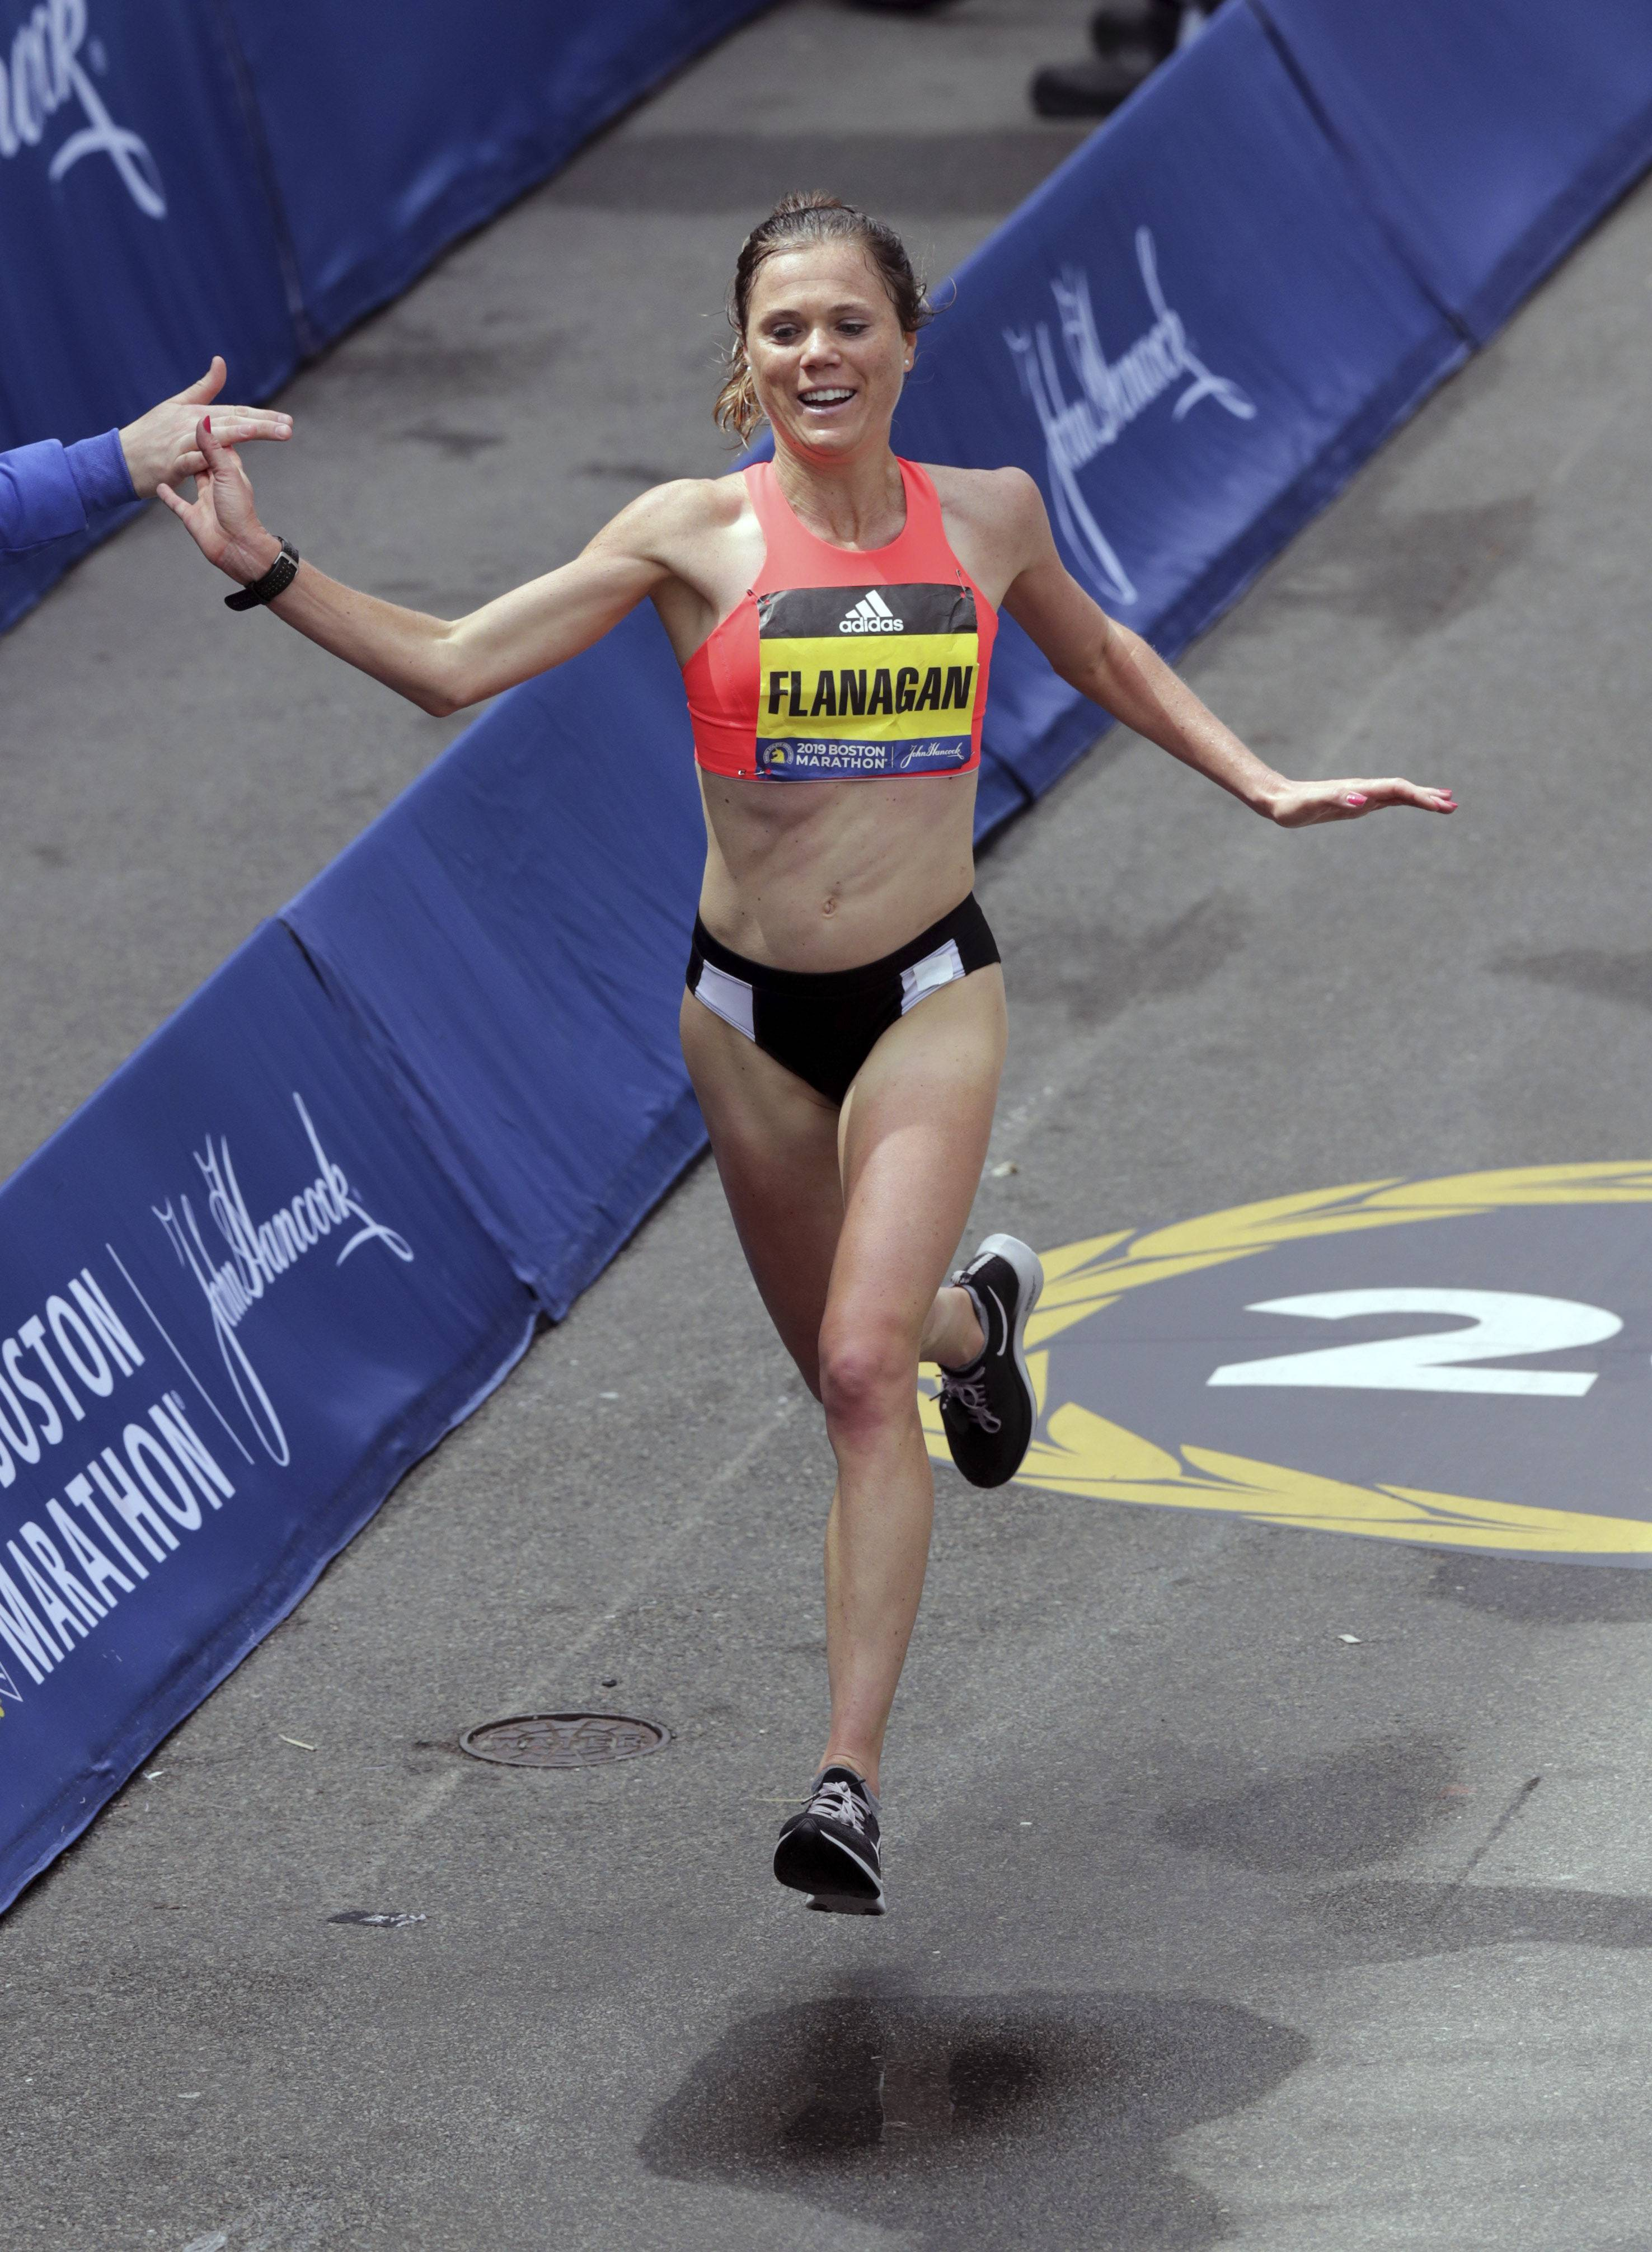 Lindsay Flanagan, of Roselle, Ill., finishes the women's division of the 123rd Boston Marathon on Monday, April 15, 2019, in Boston.